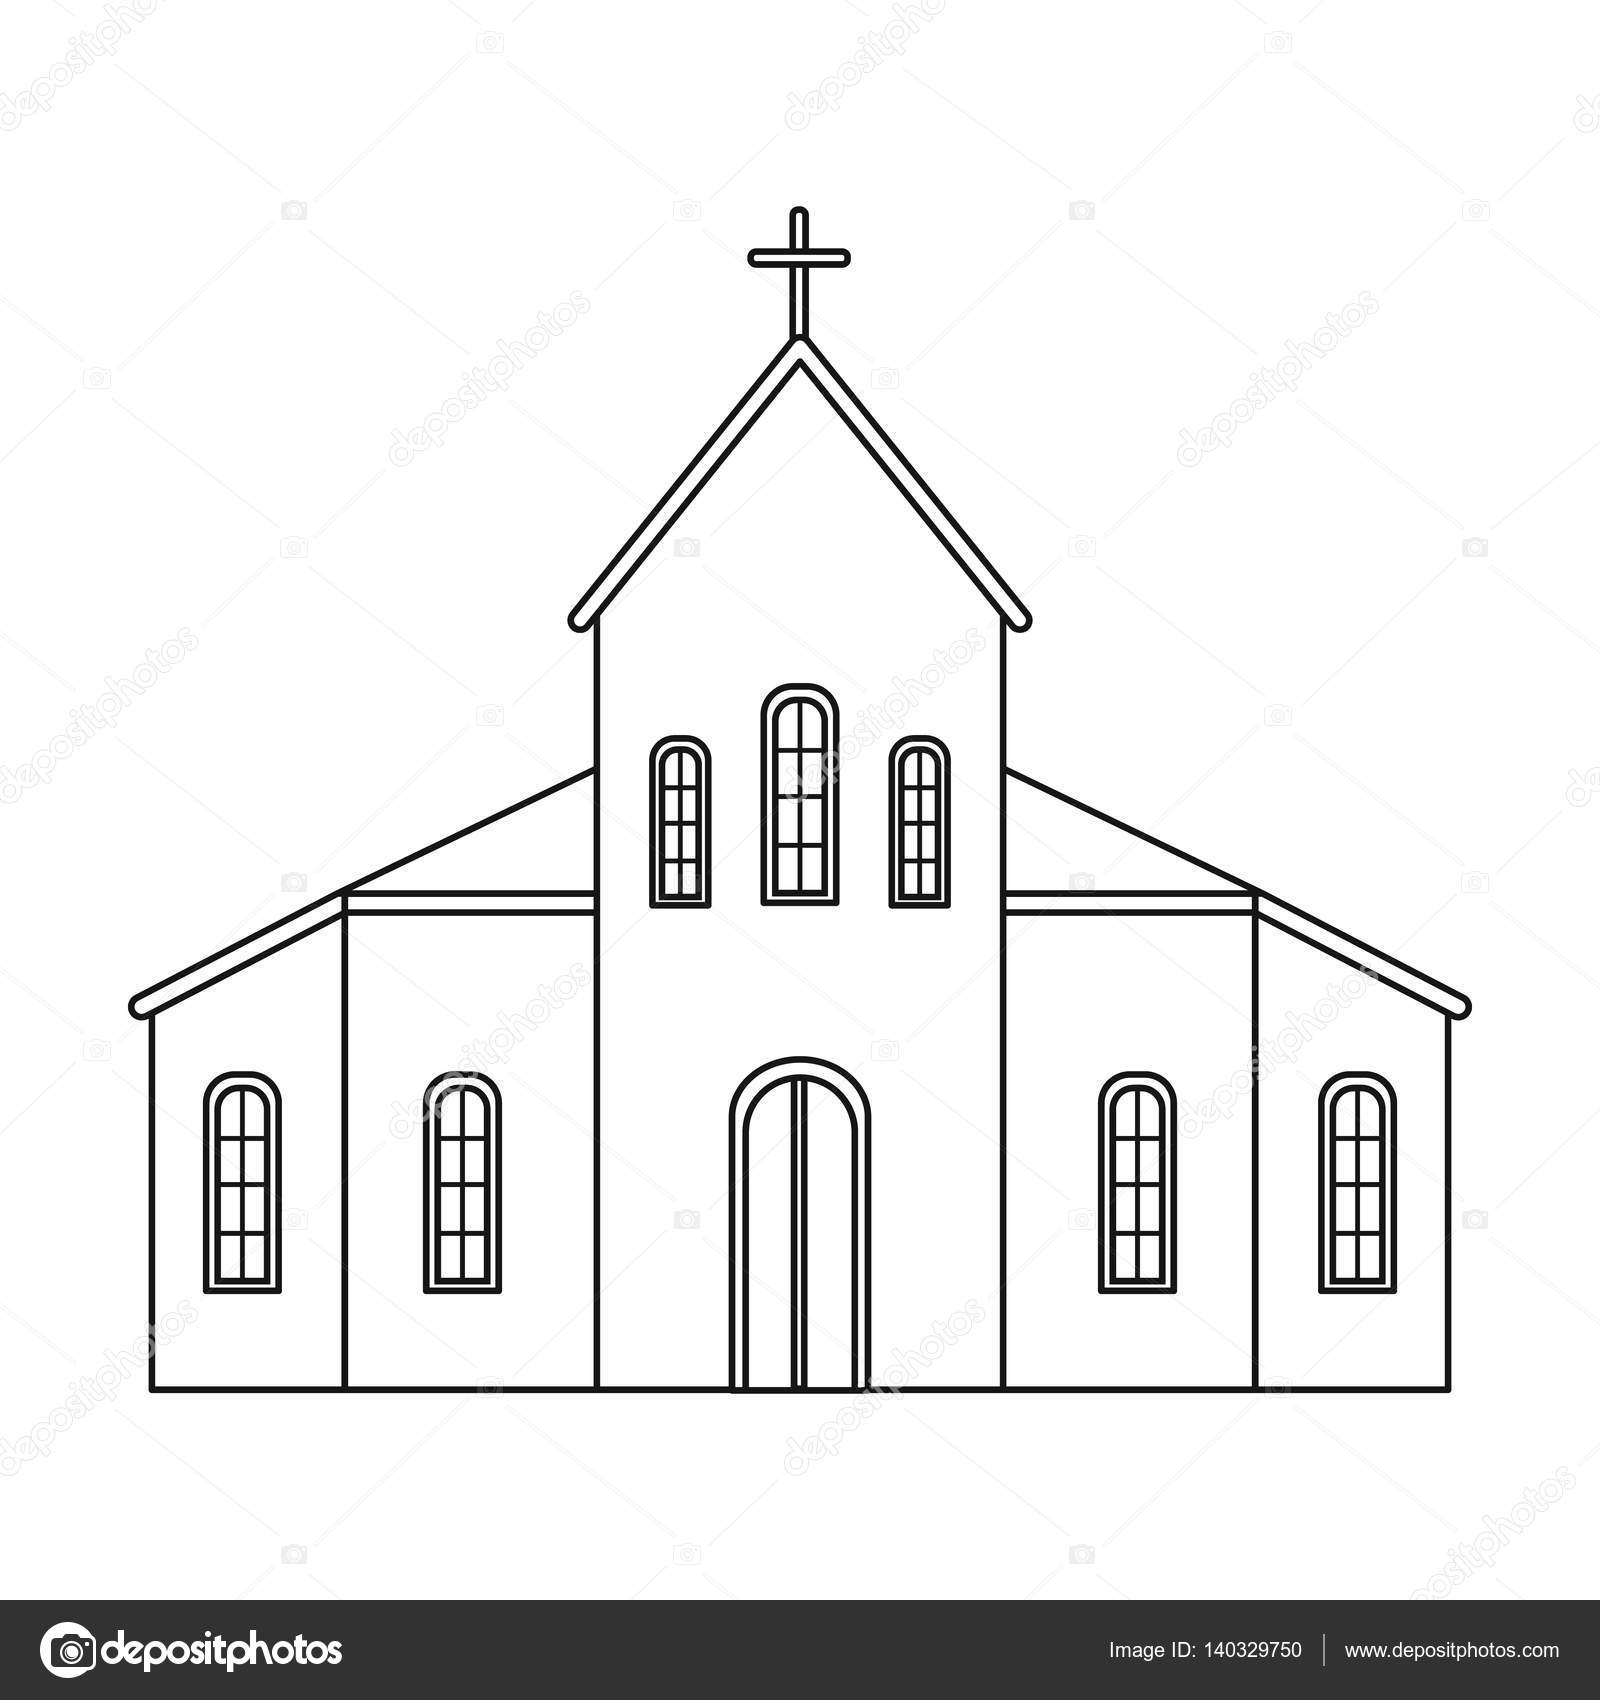 Church icon in outline style isolated on white background